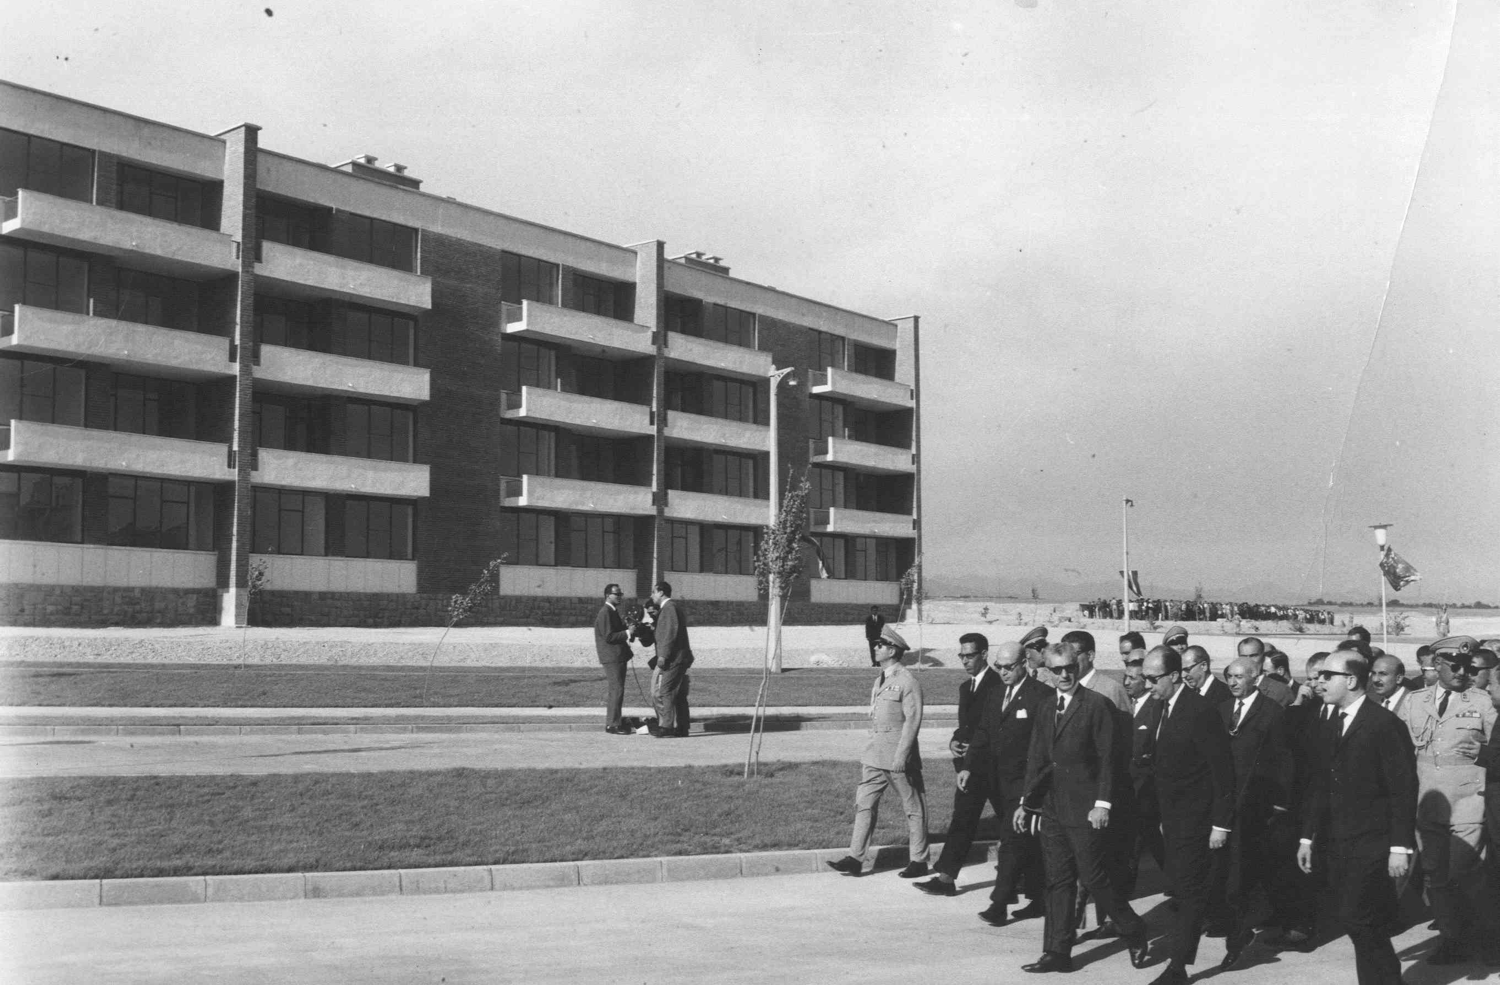 The Architecture of Public Housing in the Cold War Middle East: The Example of Iran (1948-68)